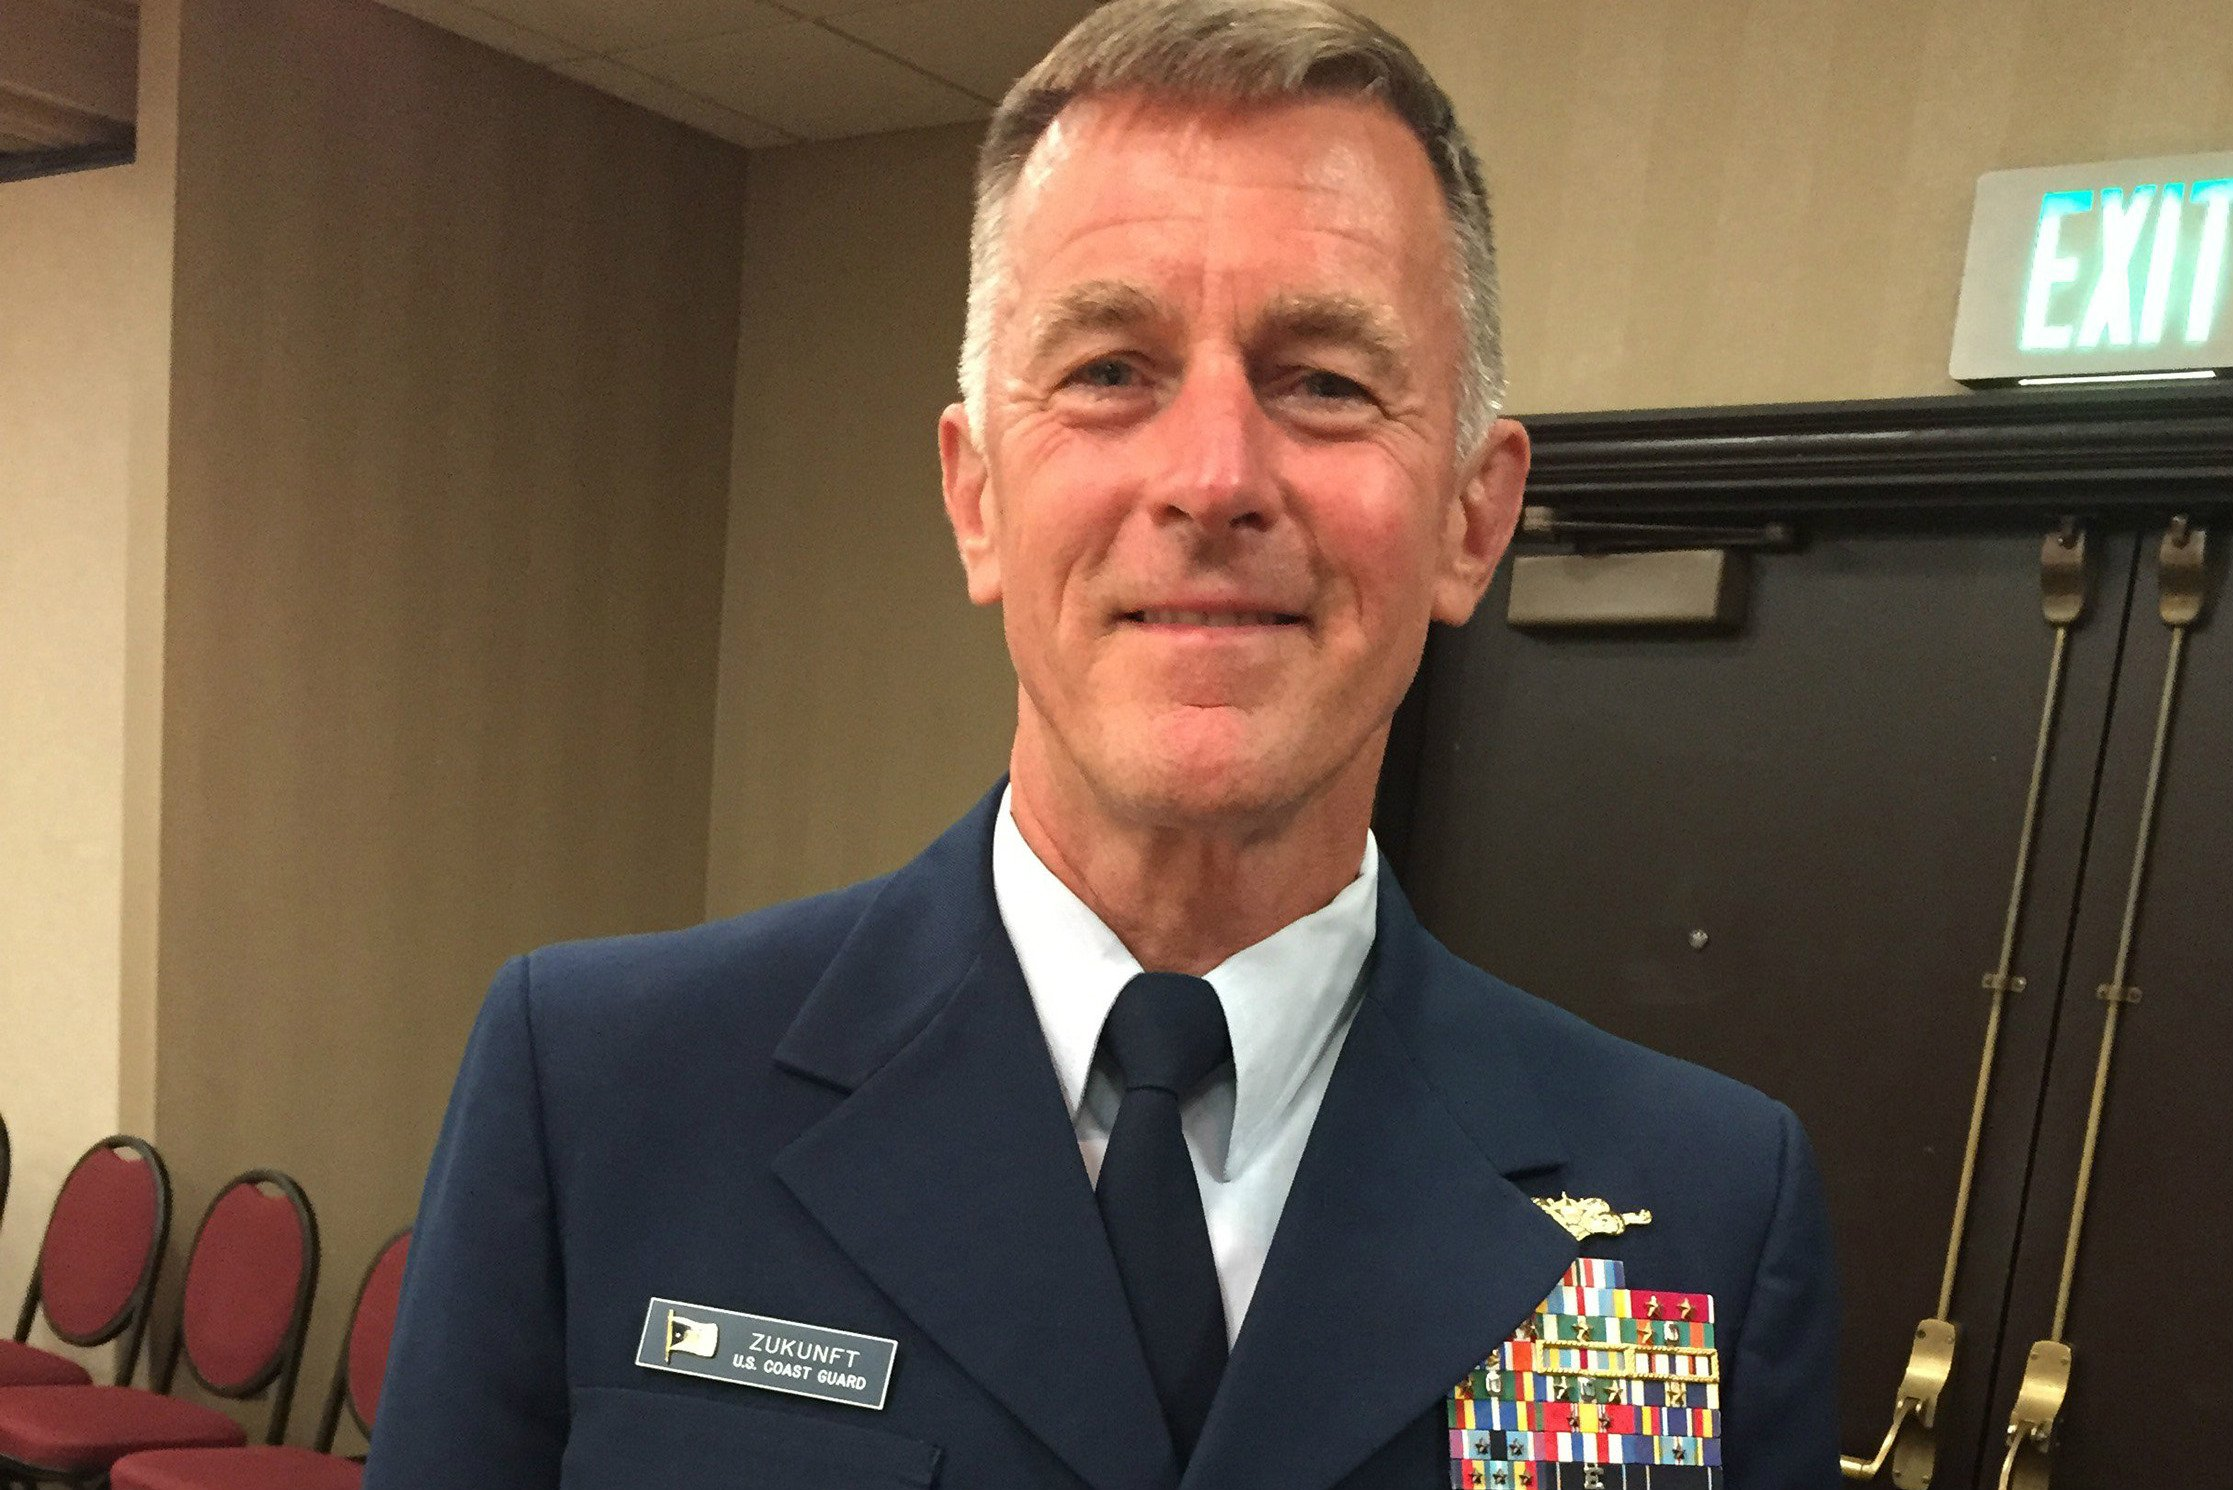 Commandant Paul Zukunft assumed the top position in the Coast Guard in 2014. Previously, his Coast Guard duty included serving as the Federal On-scene coordinator for the Deepwater Horizon Spill. (Hal Bernton / The Seattle Times / TNS)